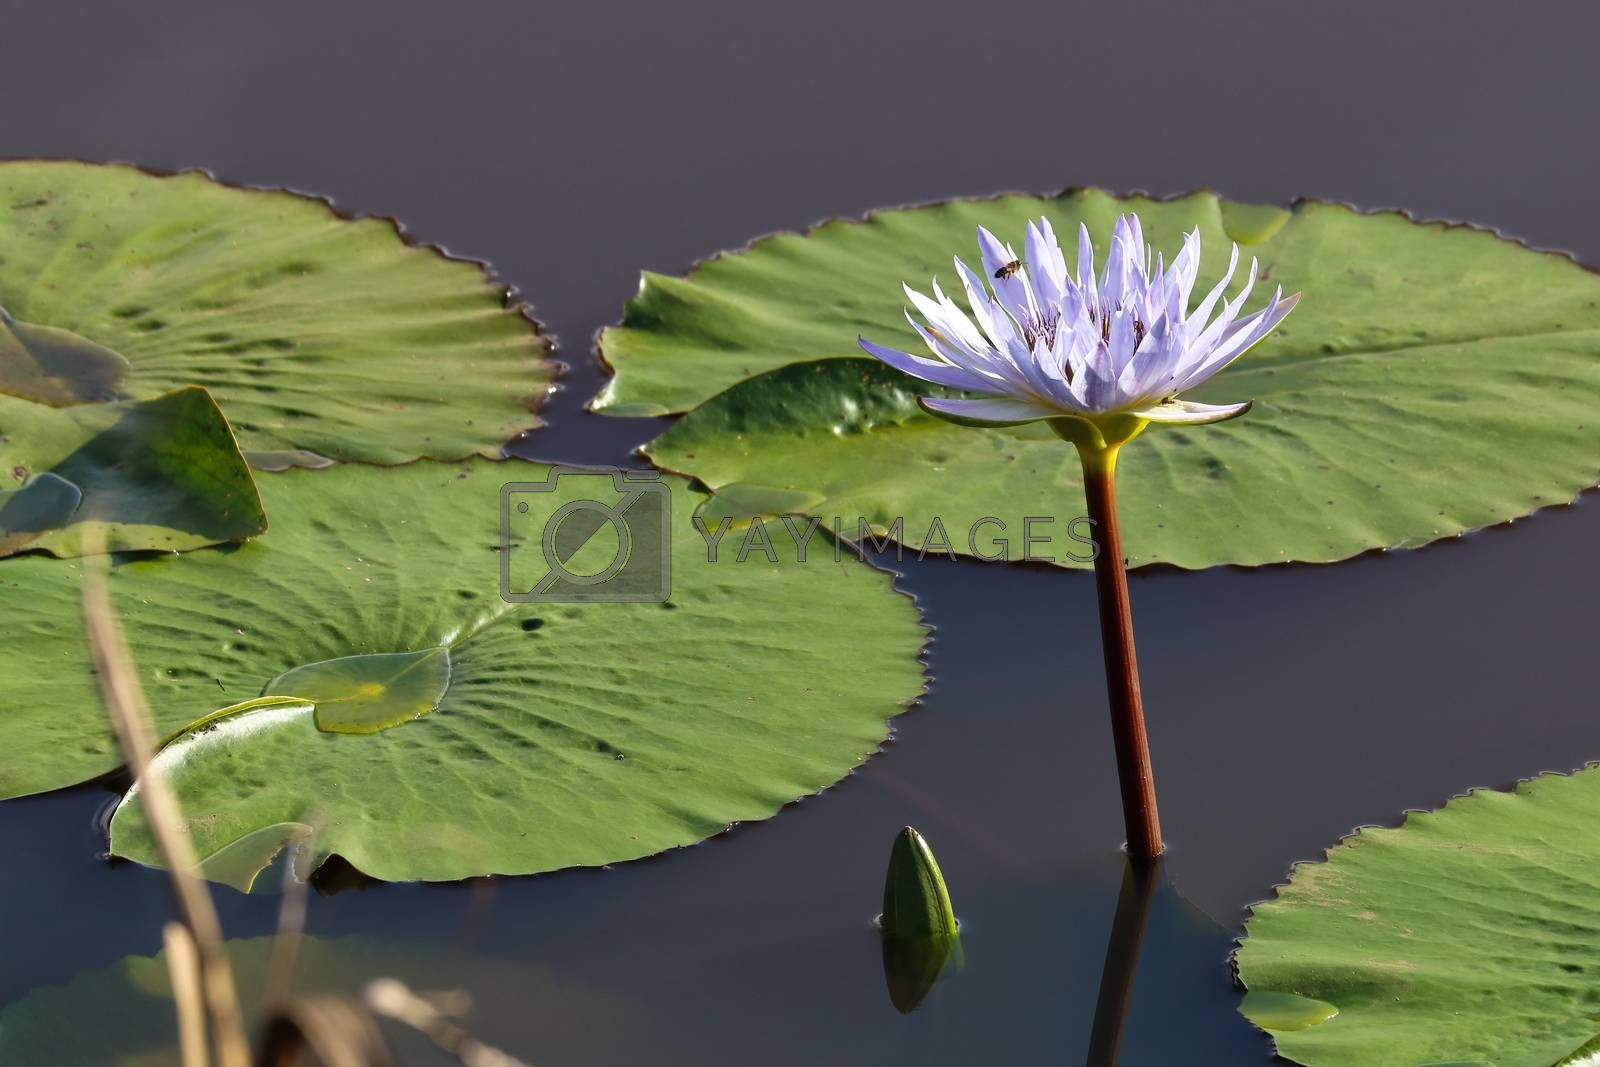 A blooming cape waterlily (Nymphaea nouchali) and lily pads on freshwater pond, George, South Africa